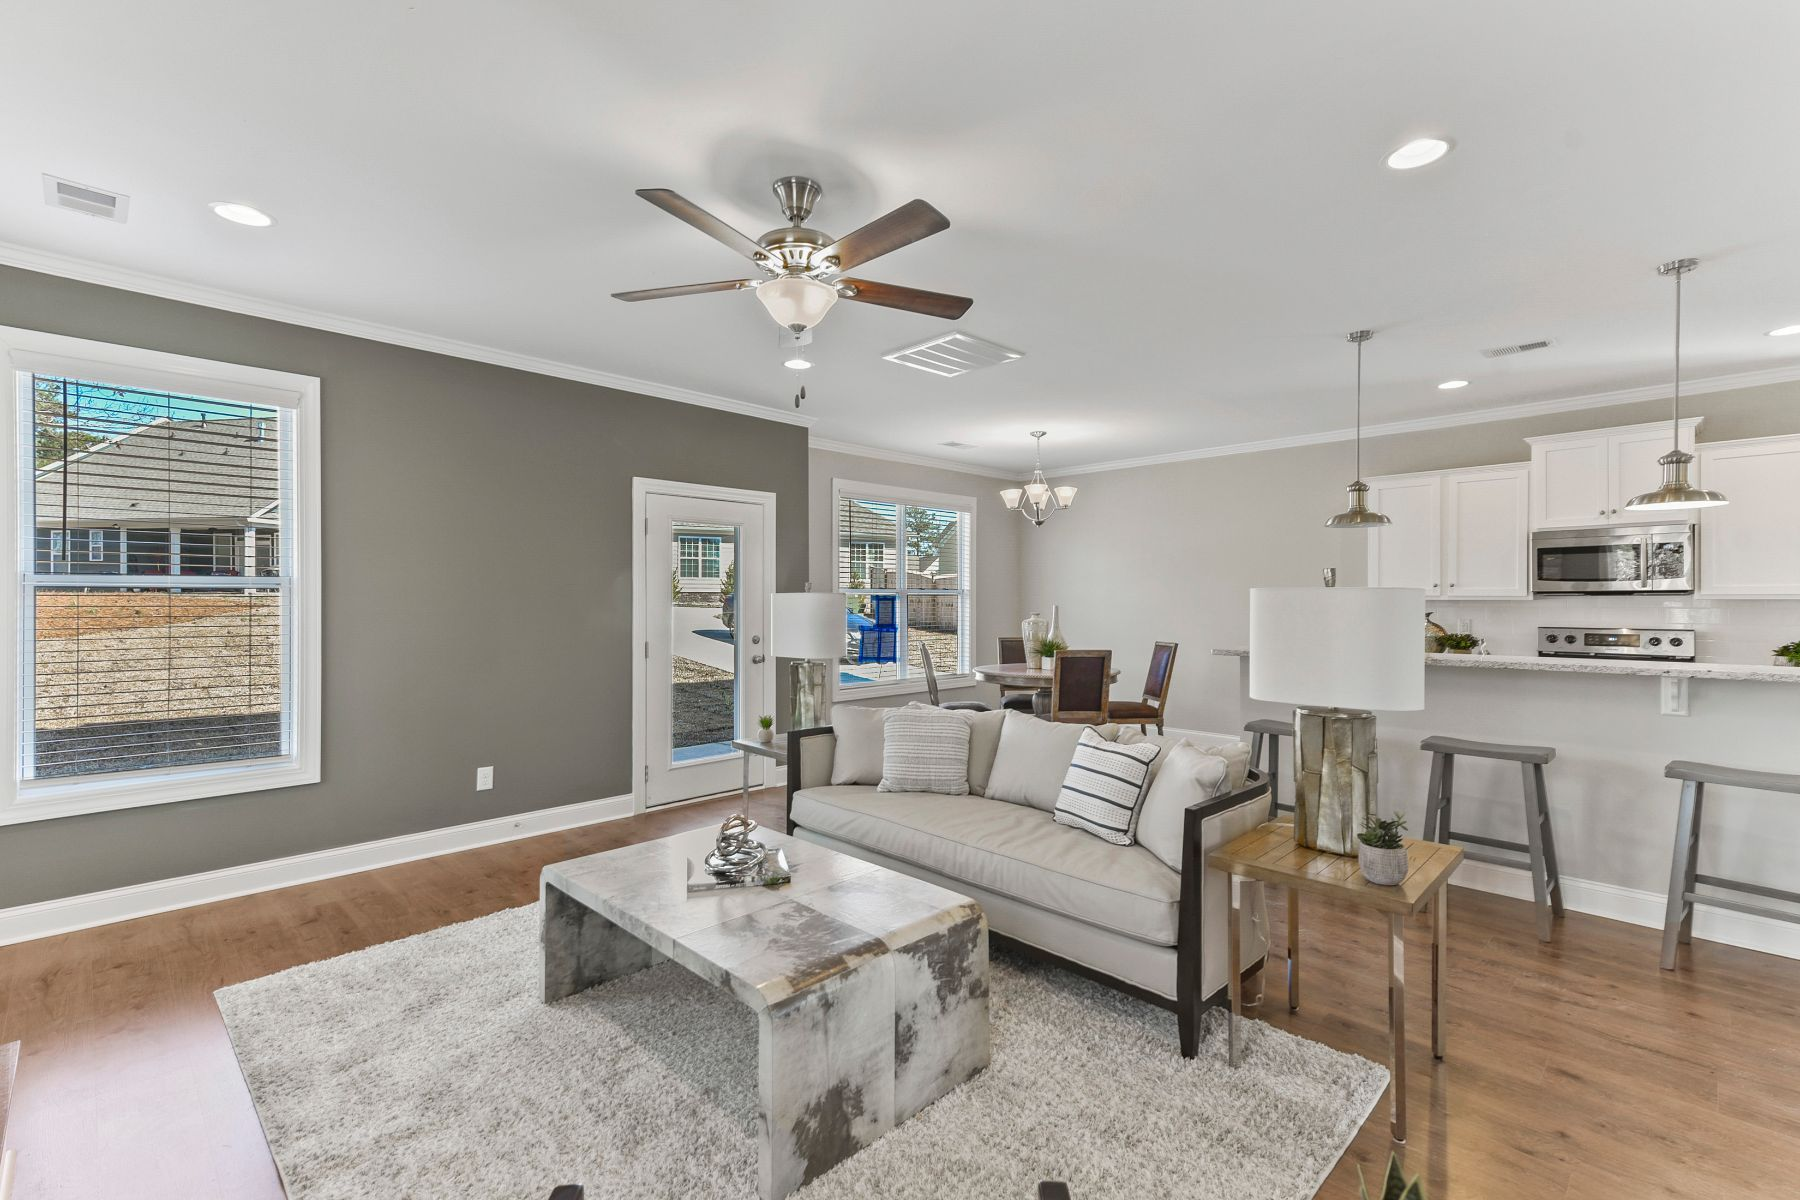 Living Area featured in the Sparrow By Executive Construction Homes in Columbia, SC